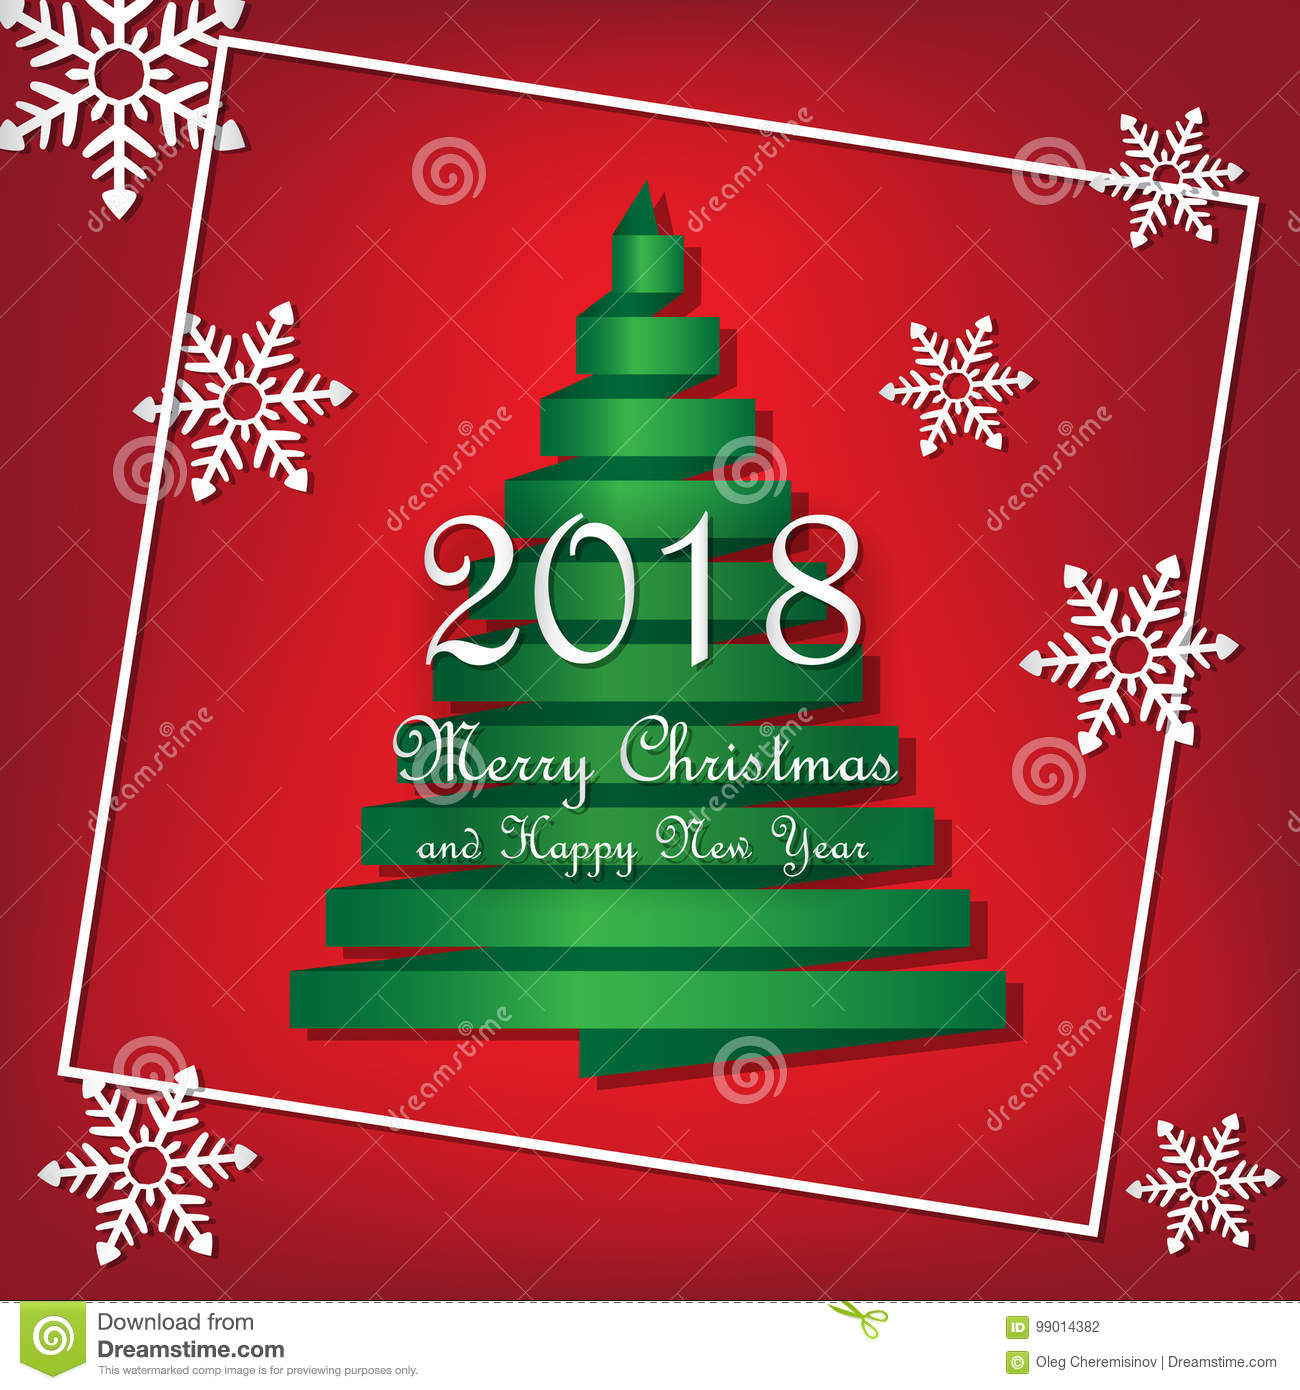 2018 merry christmas and happy new year template vector green ribbon christmas tree with snowflakes